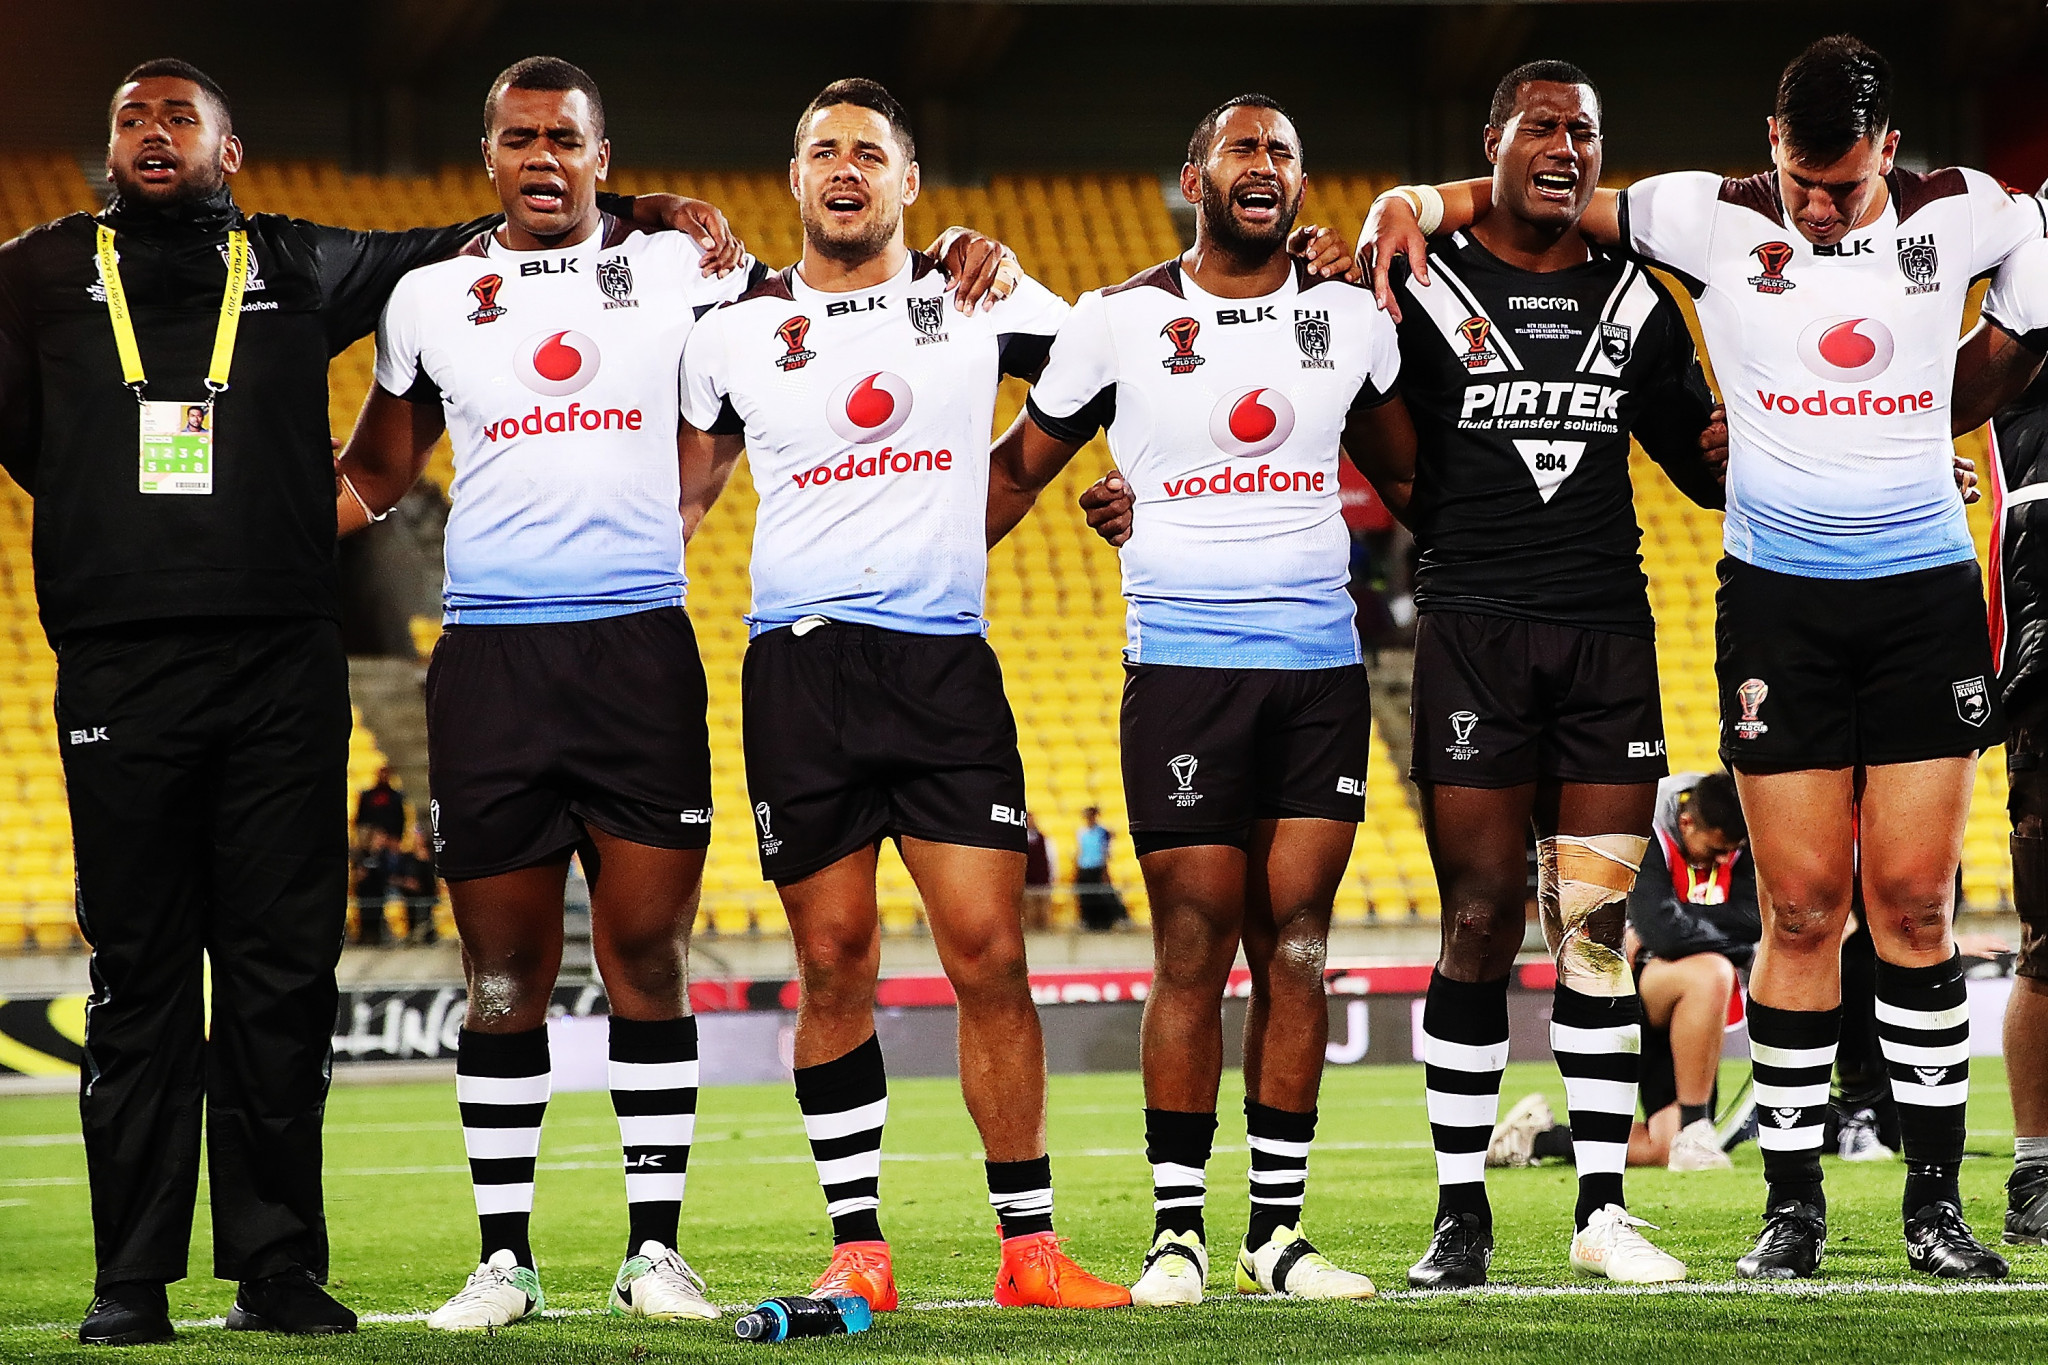 Fiji Batis stun NZ Kiwis in one of the greatest upsets